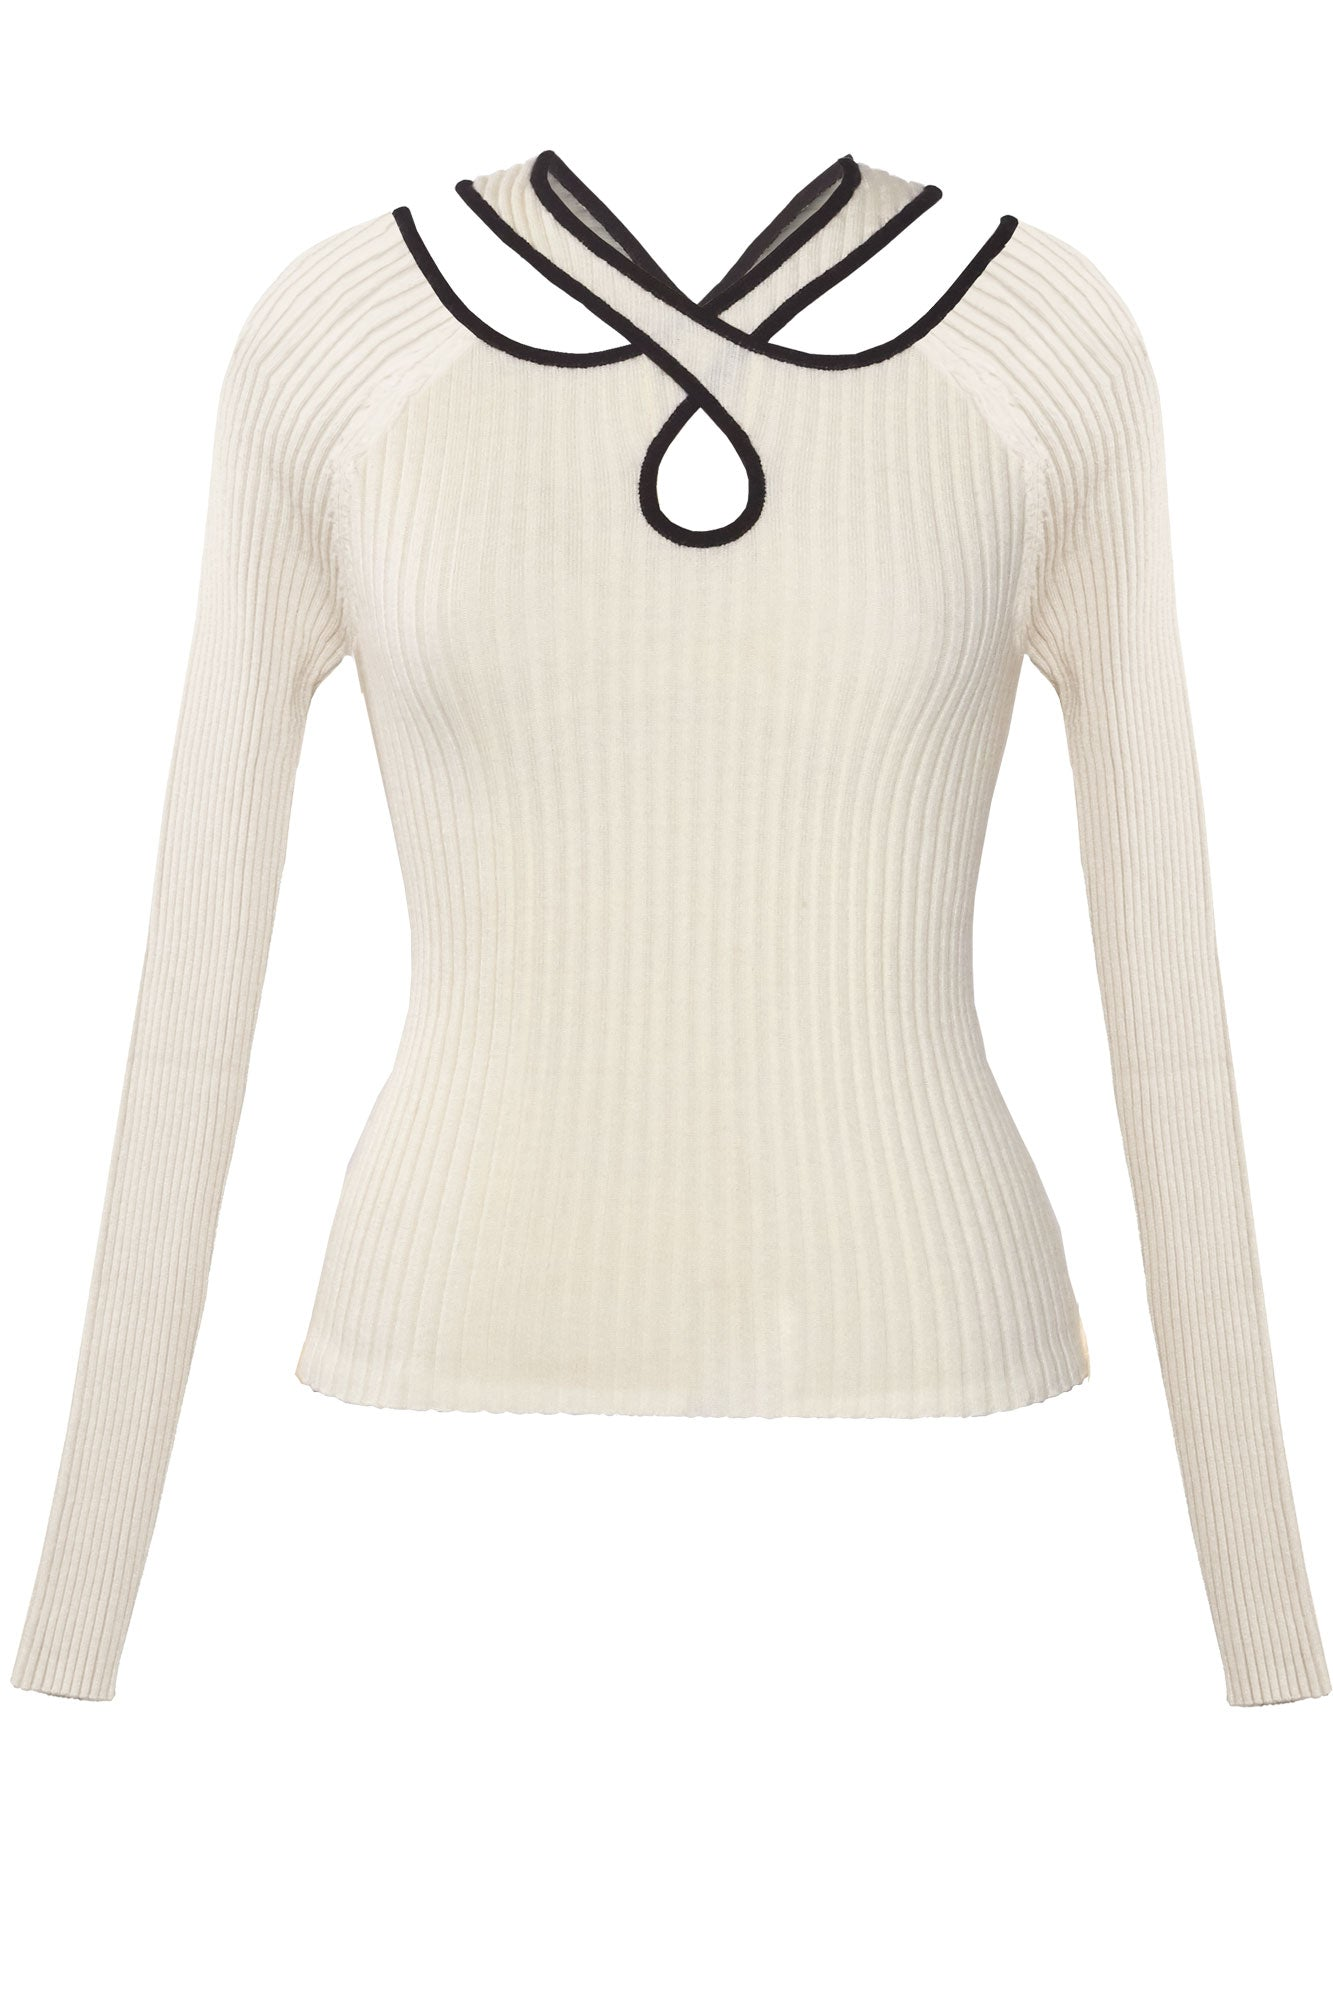 Cross Over Ribbed Knit Top - Ivory